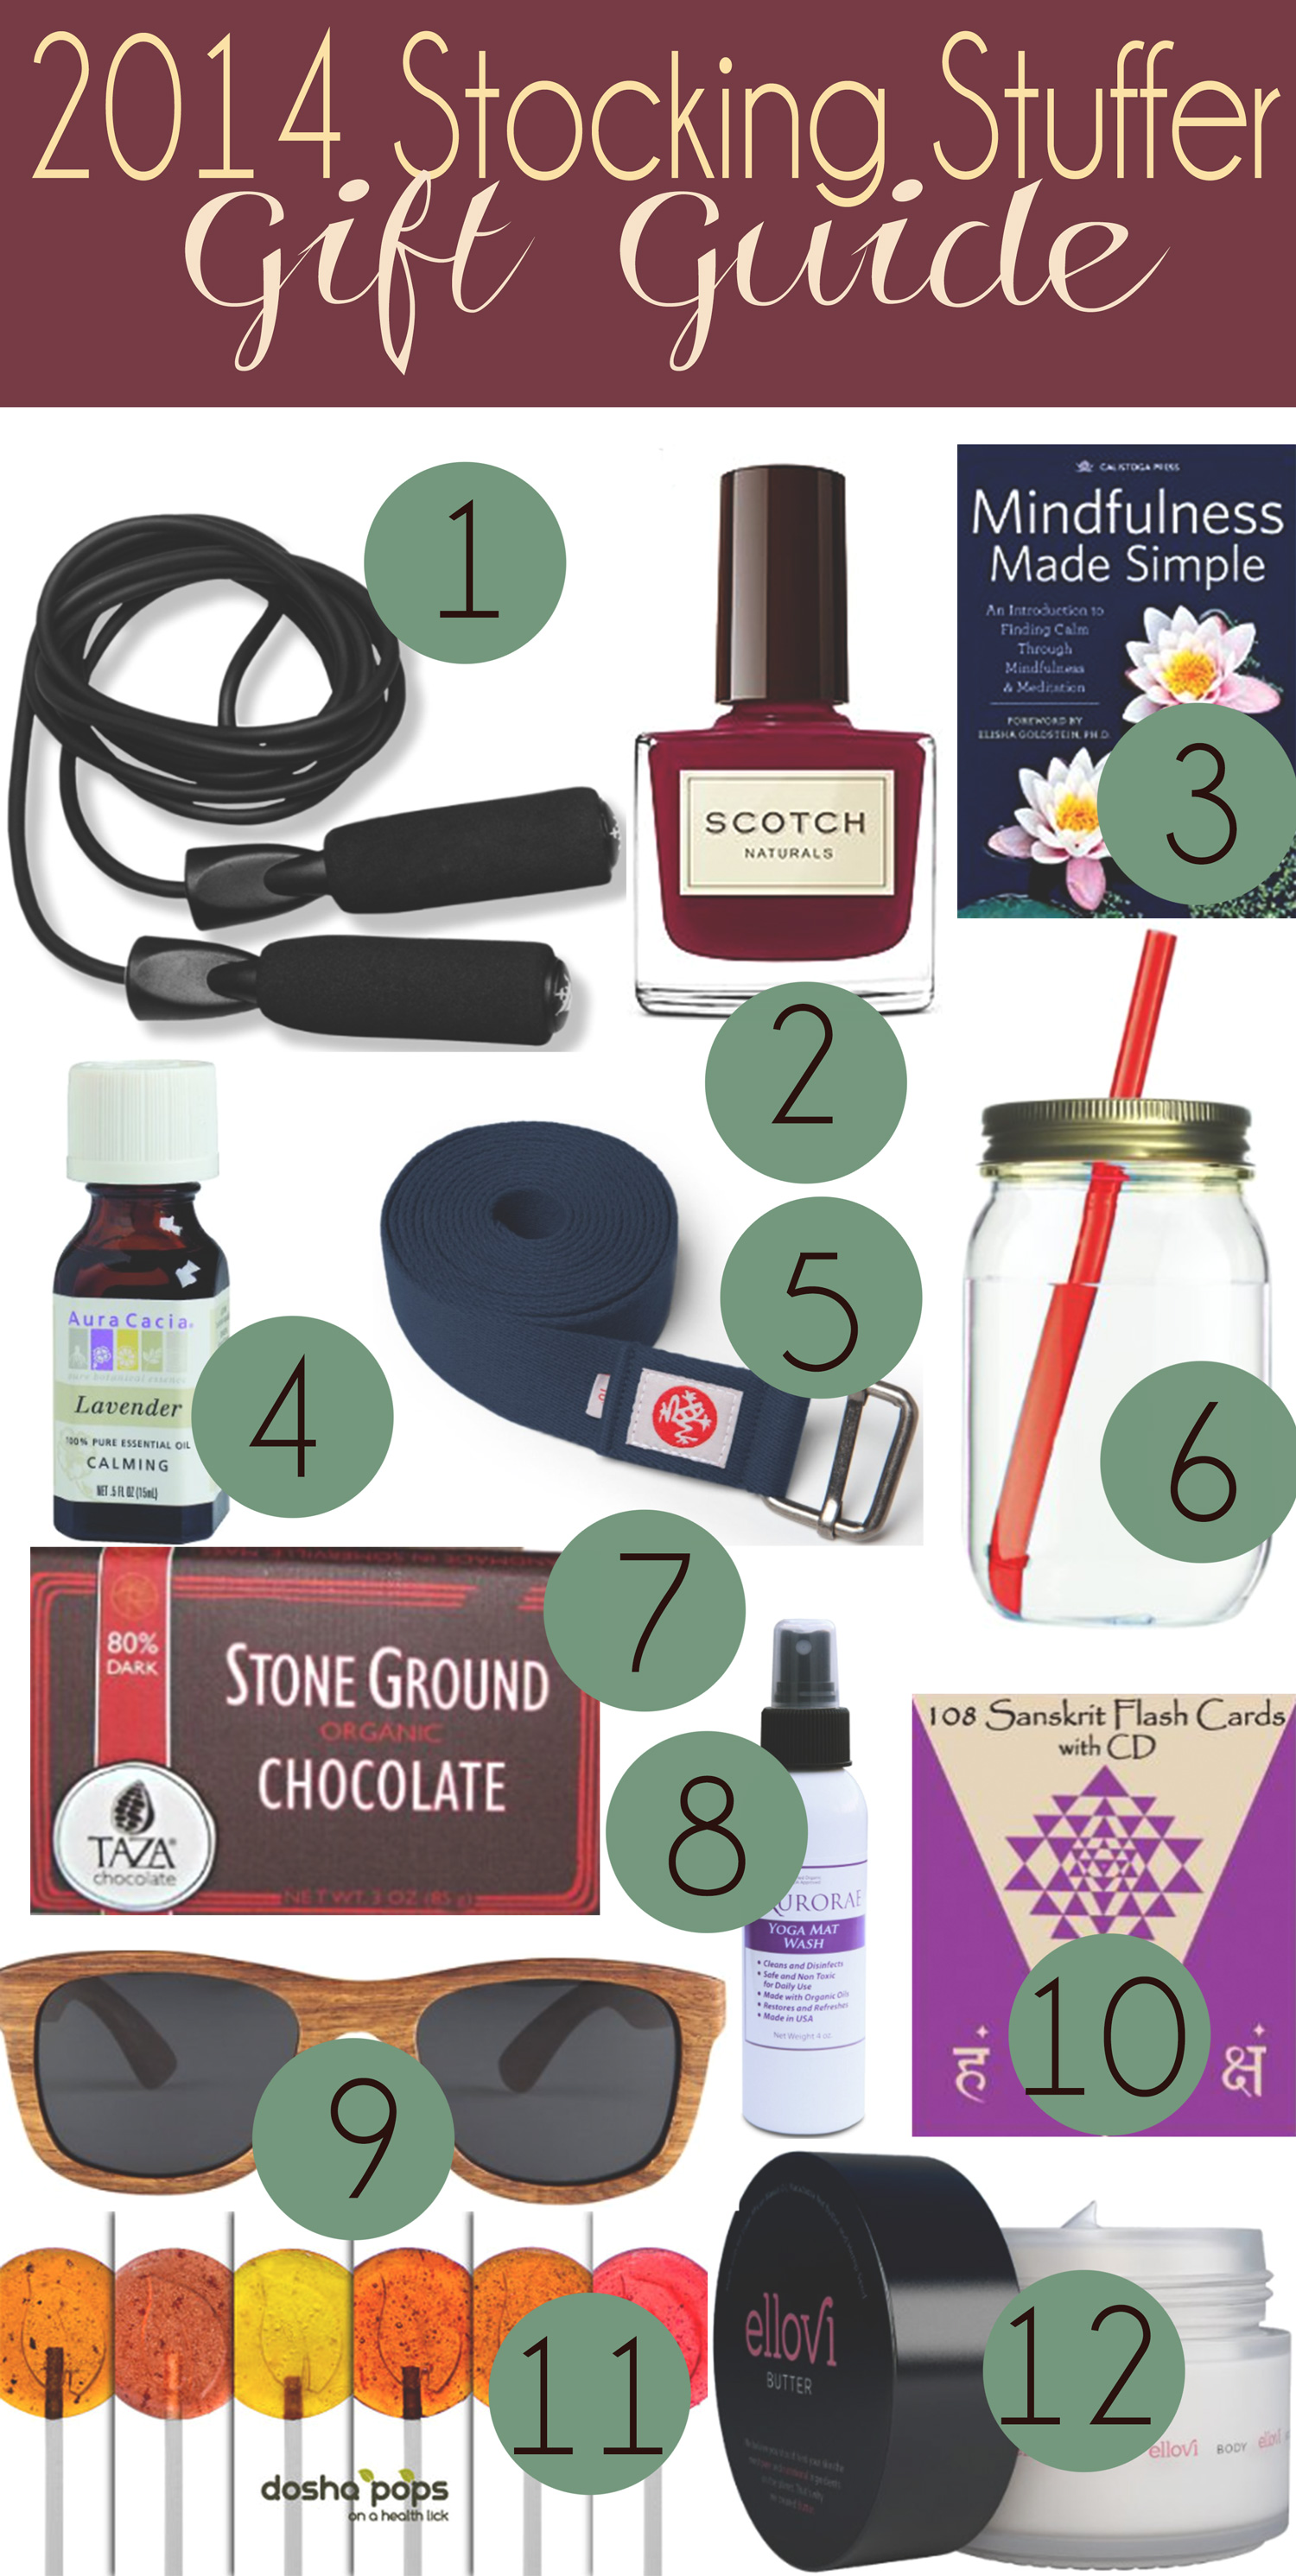 Pin it! 2014 stocking stuffer gift guide for the yoga people in your life!